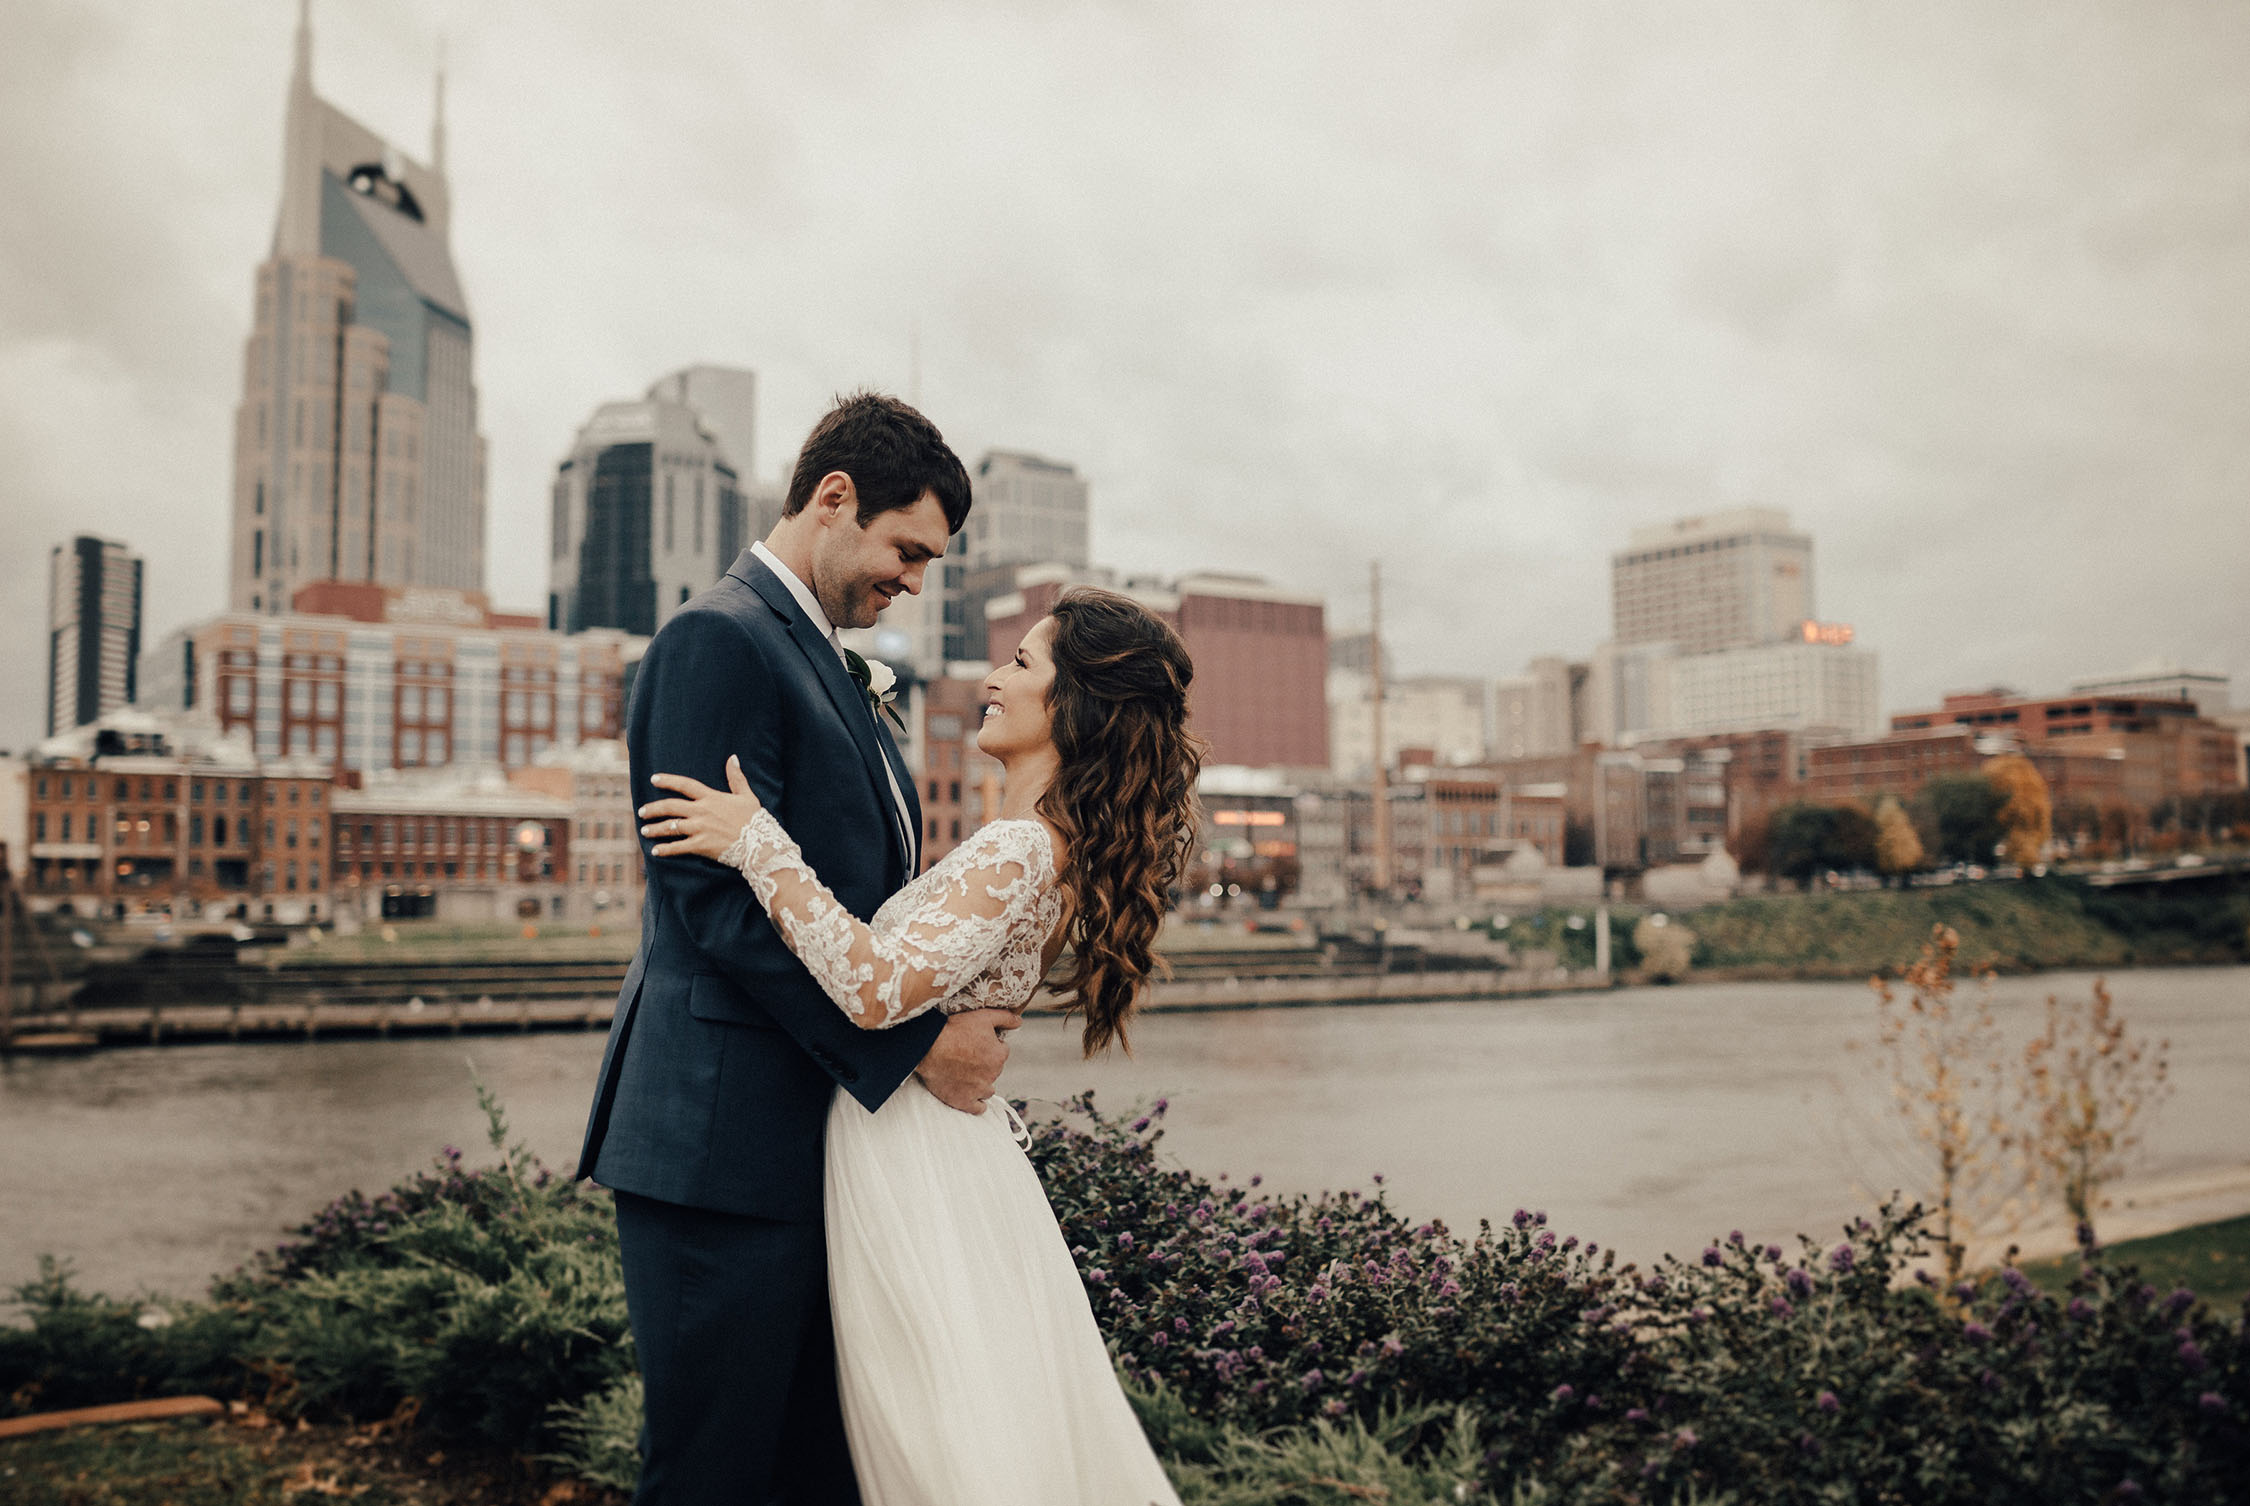 A sweet wedding with Big Events at The Bridge Building.